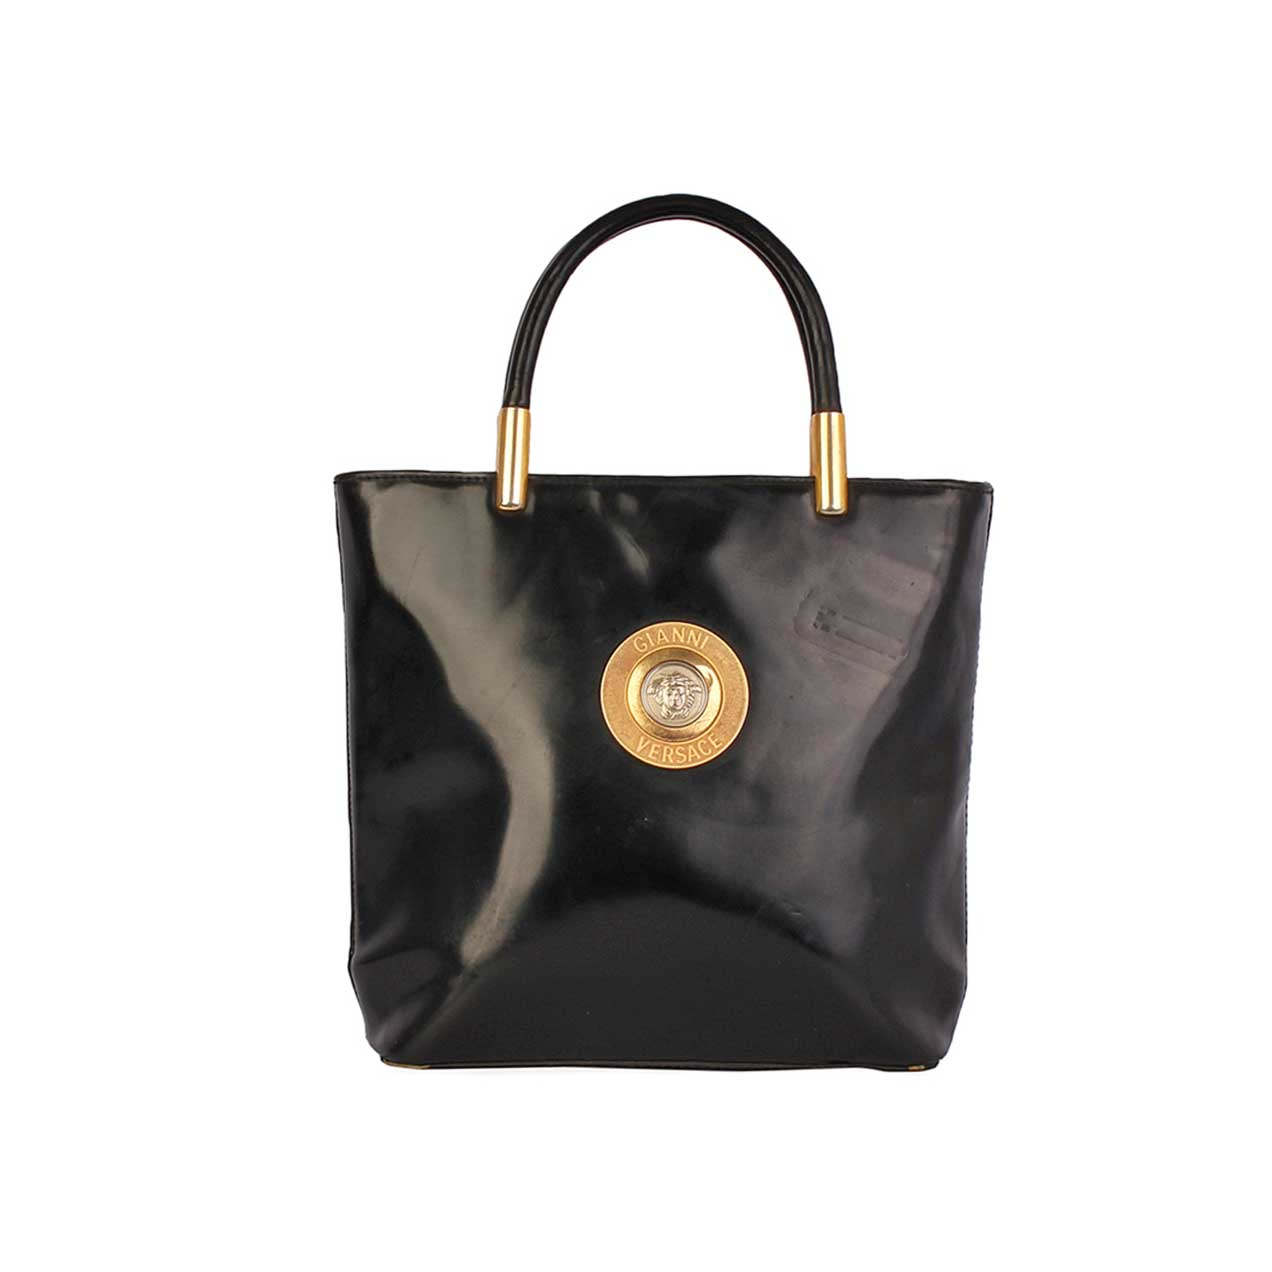 86e90dbdfb60 VERSACE VERSUS Leather Shearling Bag Black.   730.00   365.00 Select  options · Promo!